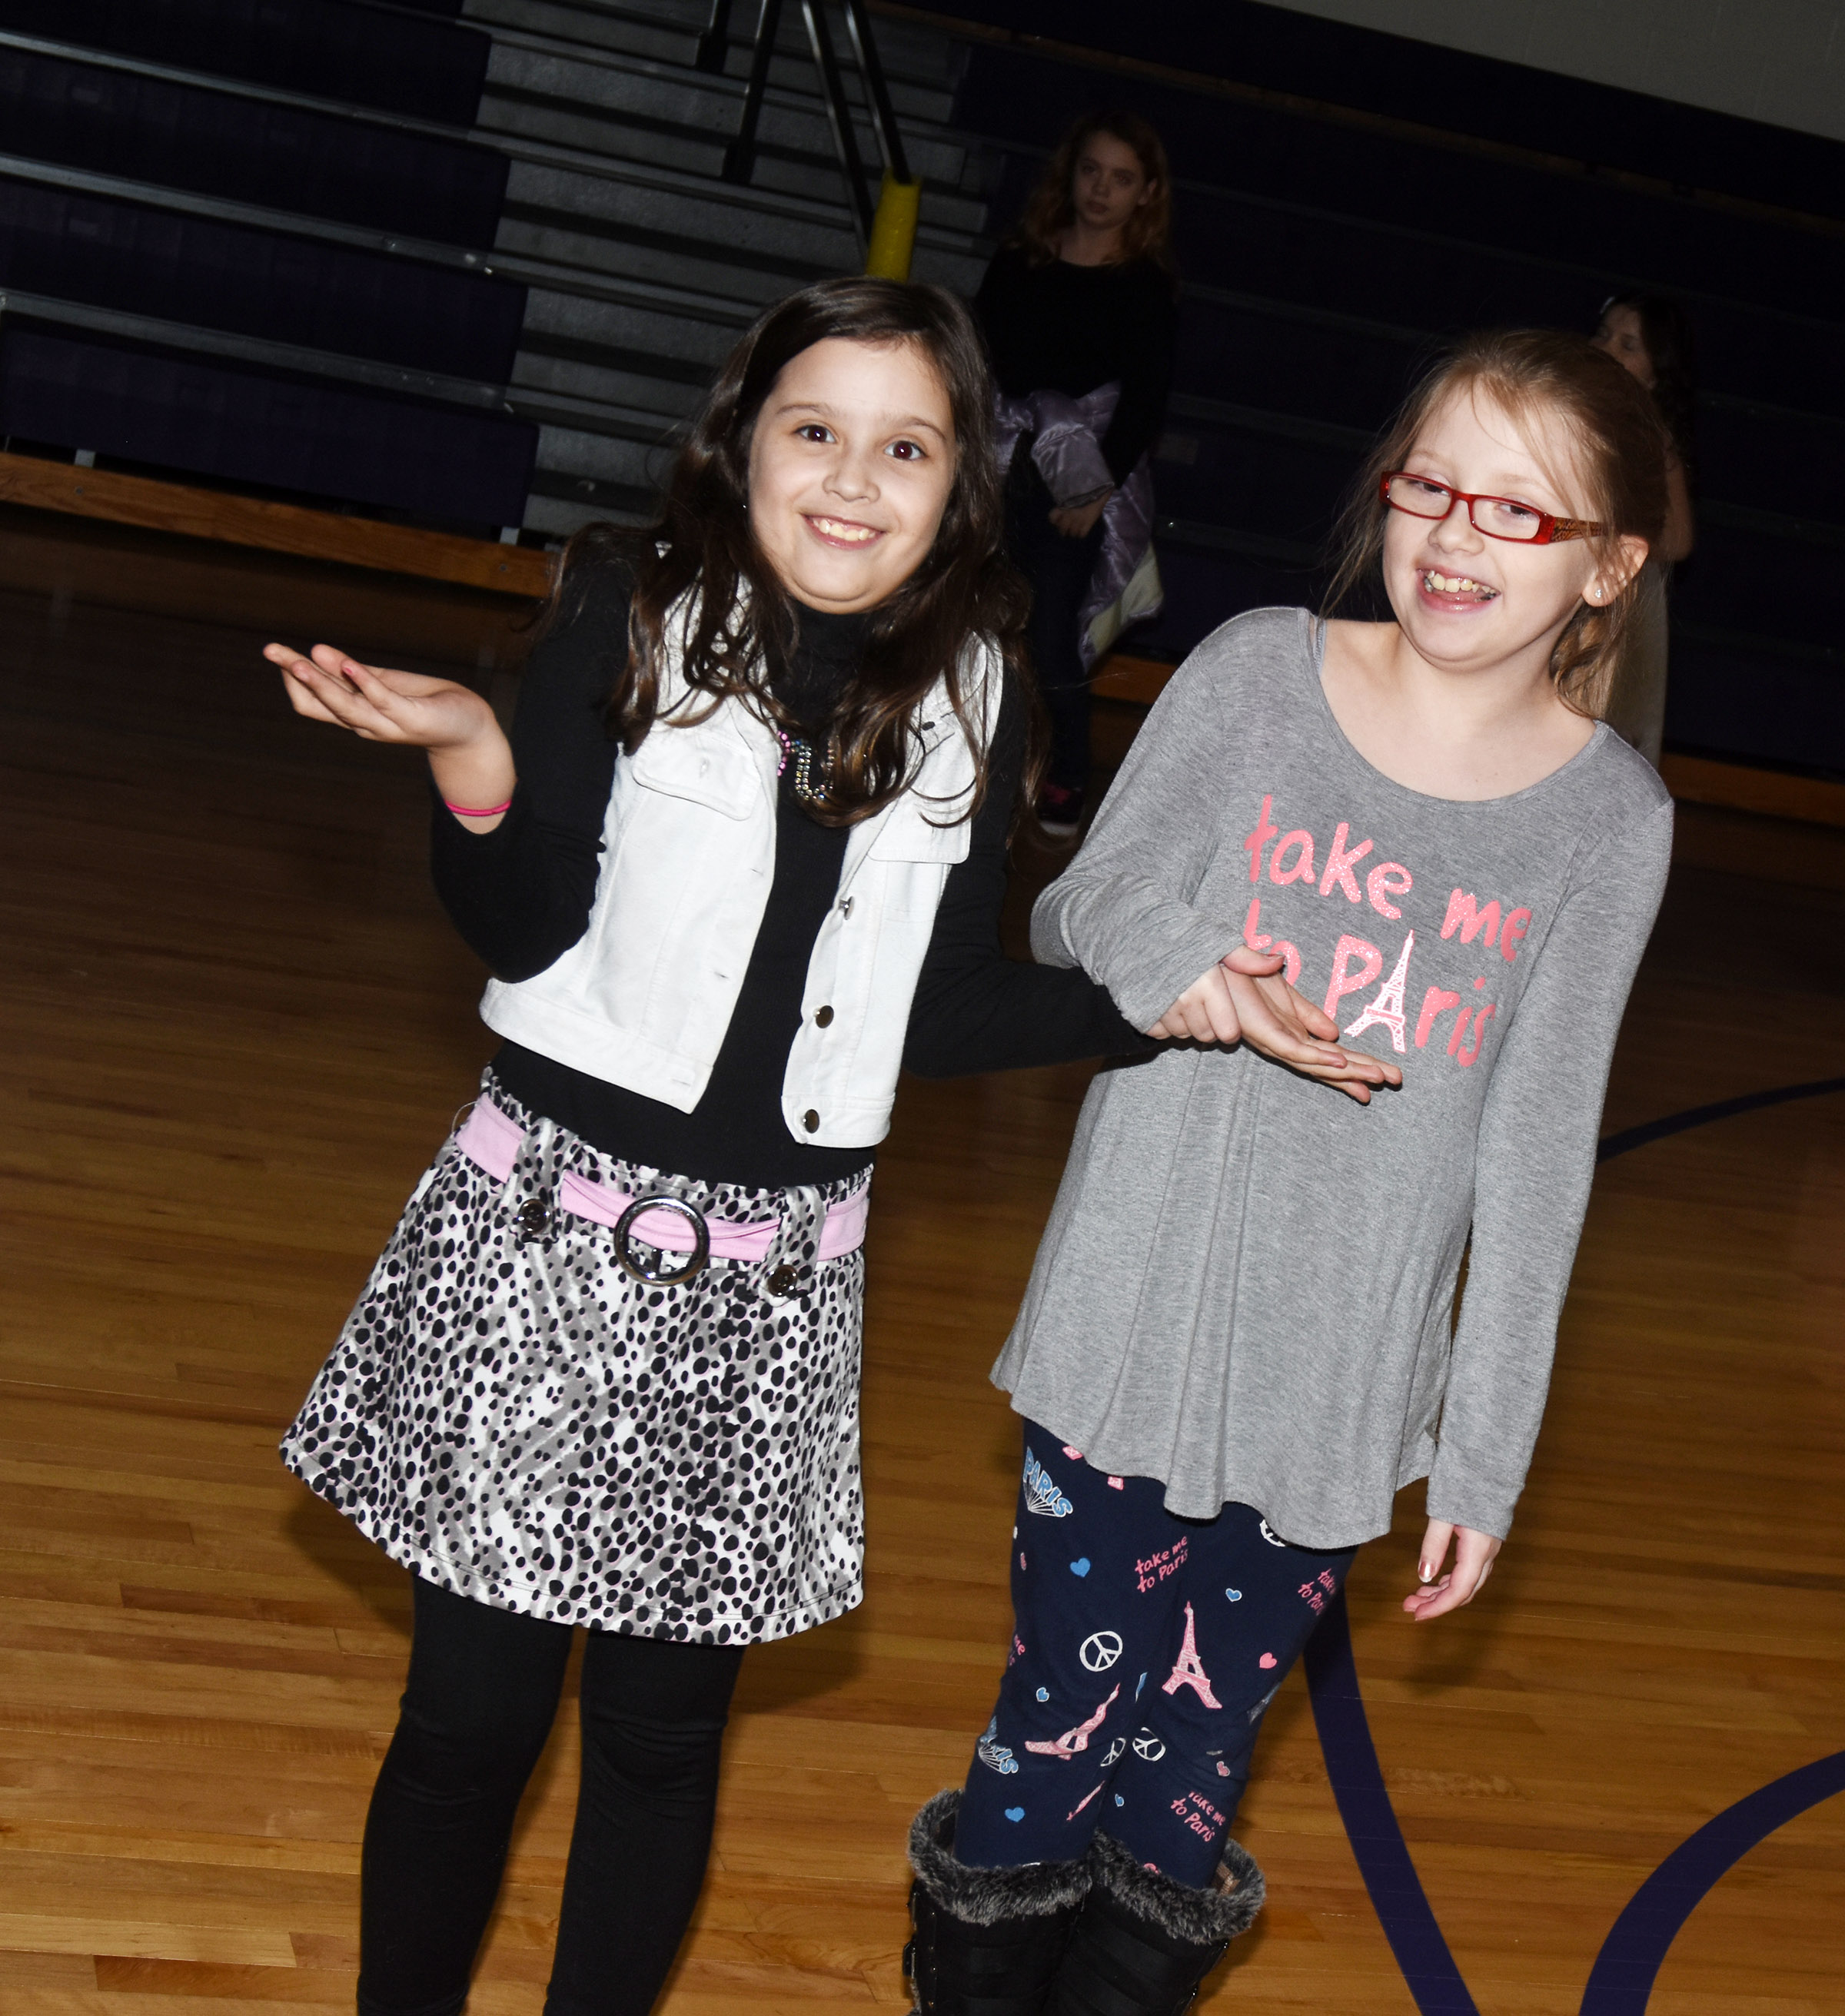 CES fourth-graders Zehavah Negron, at left, and Gracie Pendleton have fun at the dance.